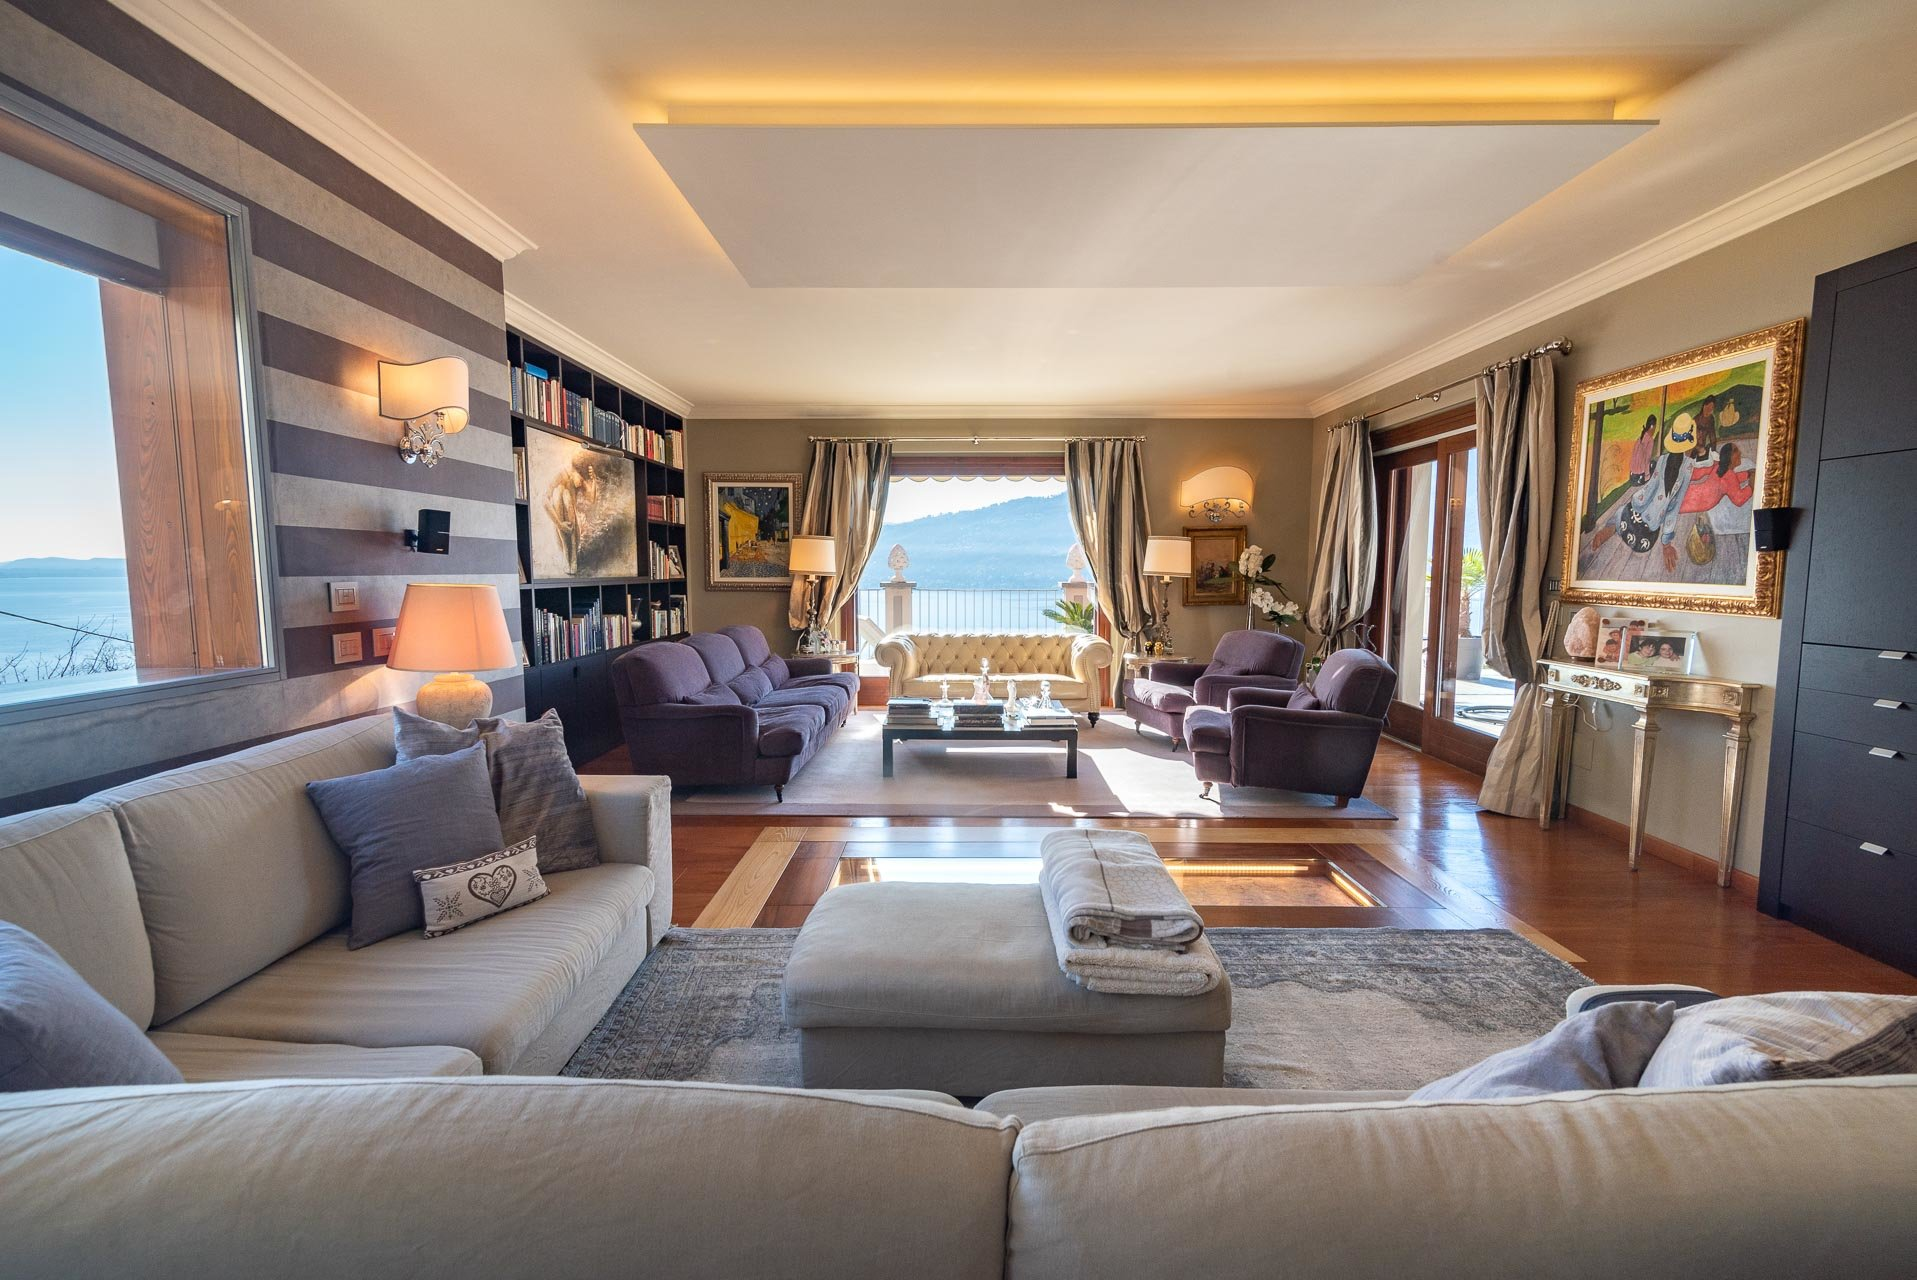 Modern villa with pool for sale in Verbania - living room